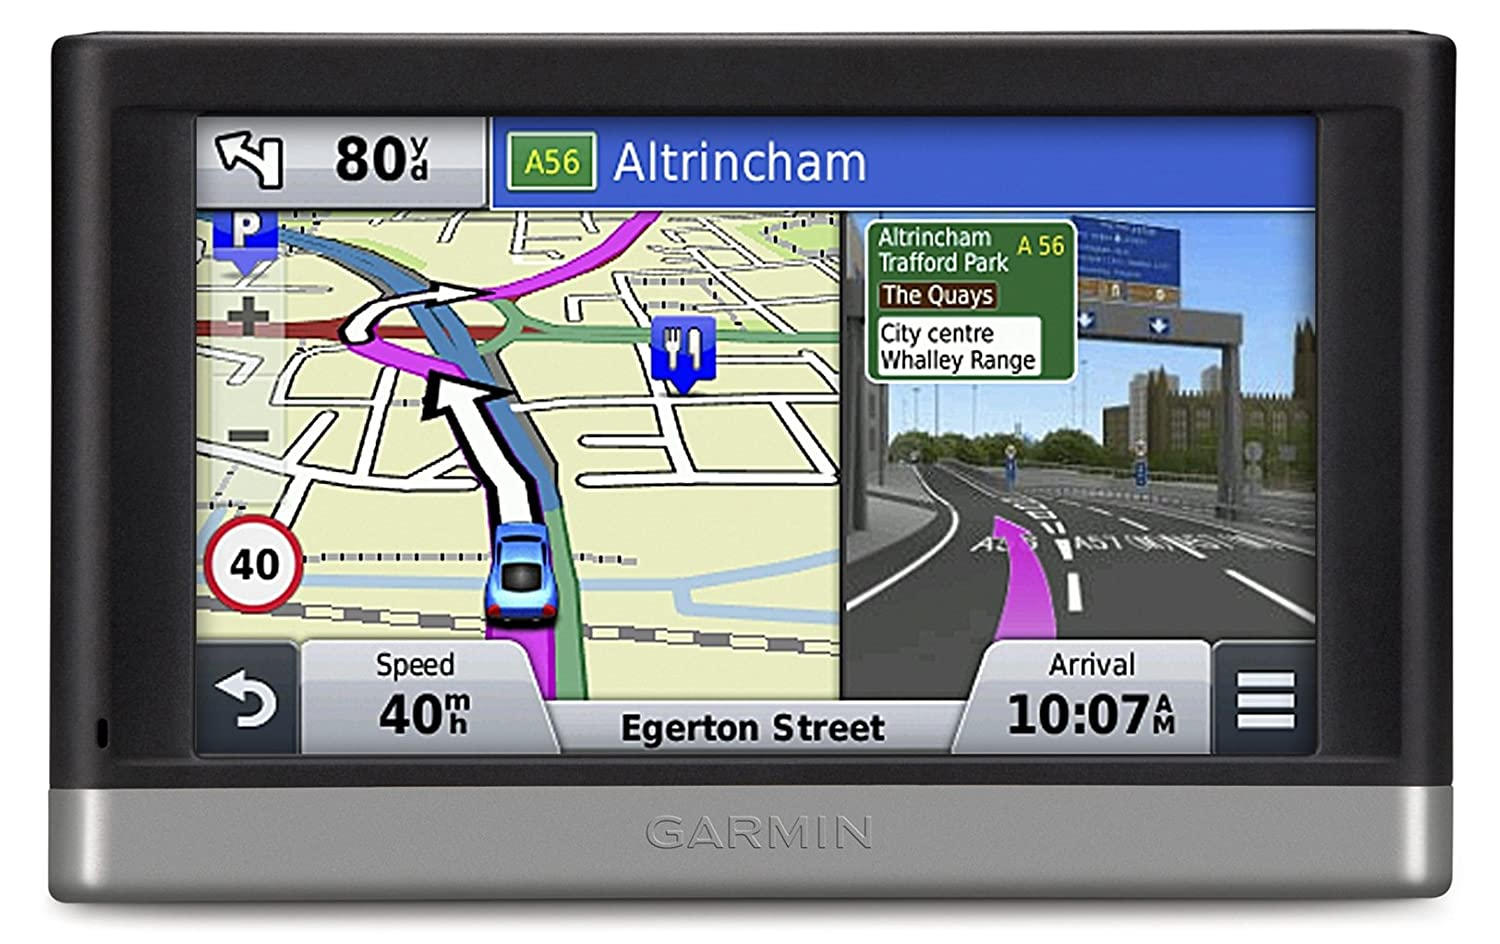 Garmin Nuvi 2598LMT-D 5 inch Satellite Navigation with UK and Full Europe Maps, Free Lifetime Map Updates, Free Lifetime Digital Traffic Alerts and Bluetooth 010-01123-35